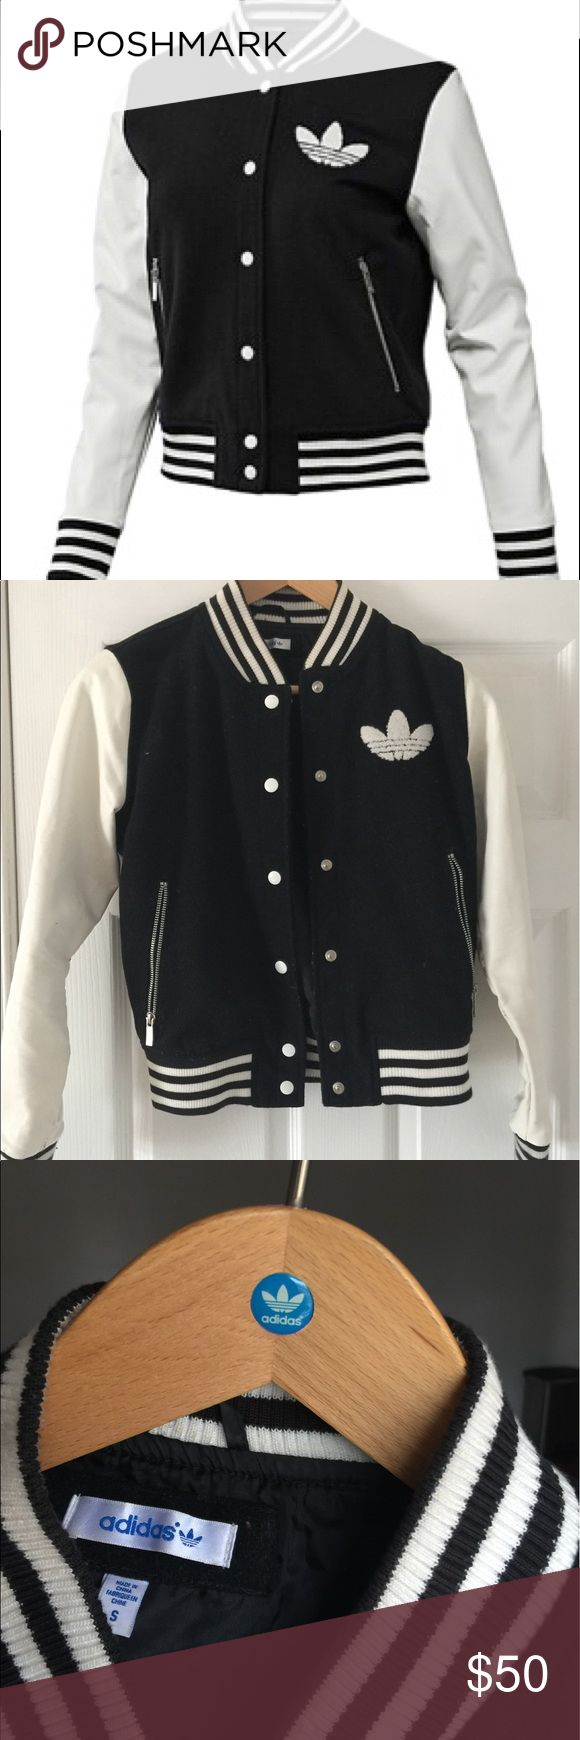 Adidas Varsity Letterman Jacket Super cute sports jacket by Adidas Originals. Can dress this baby up or down! Scuffs on inside of sleeve from rubbing against body of the jacket. Scuffs aren't seen when jacket is on. Adidas Jackets & Coats